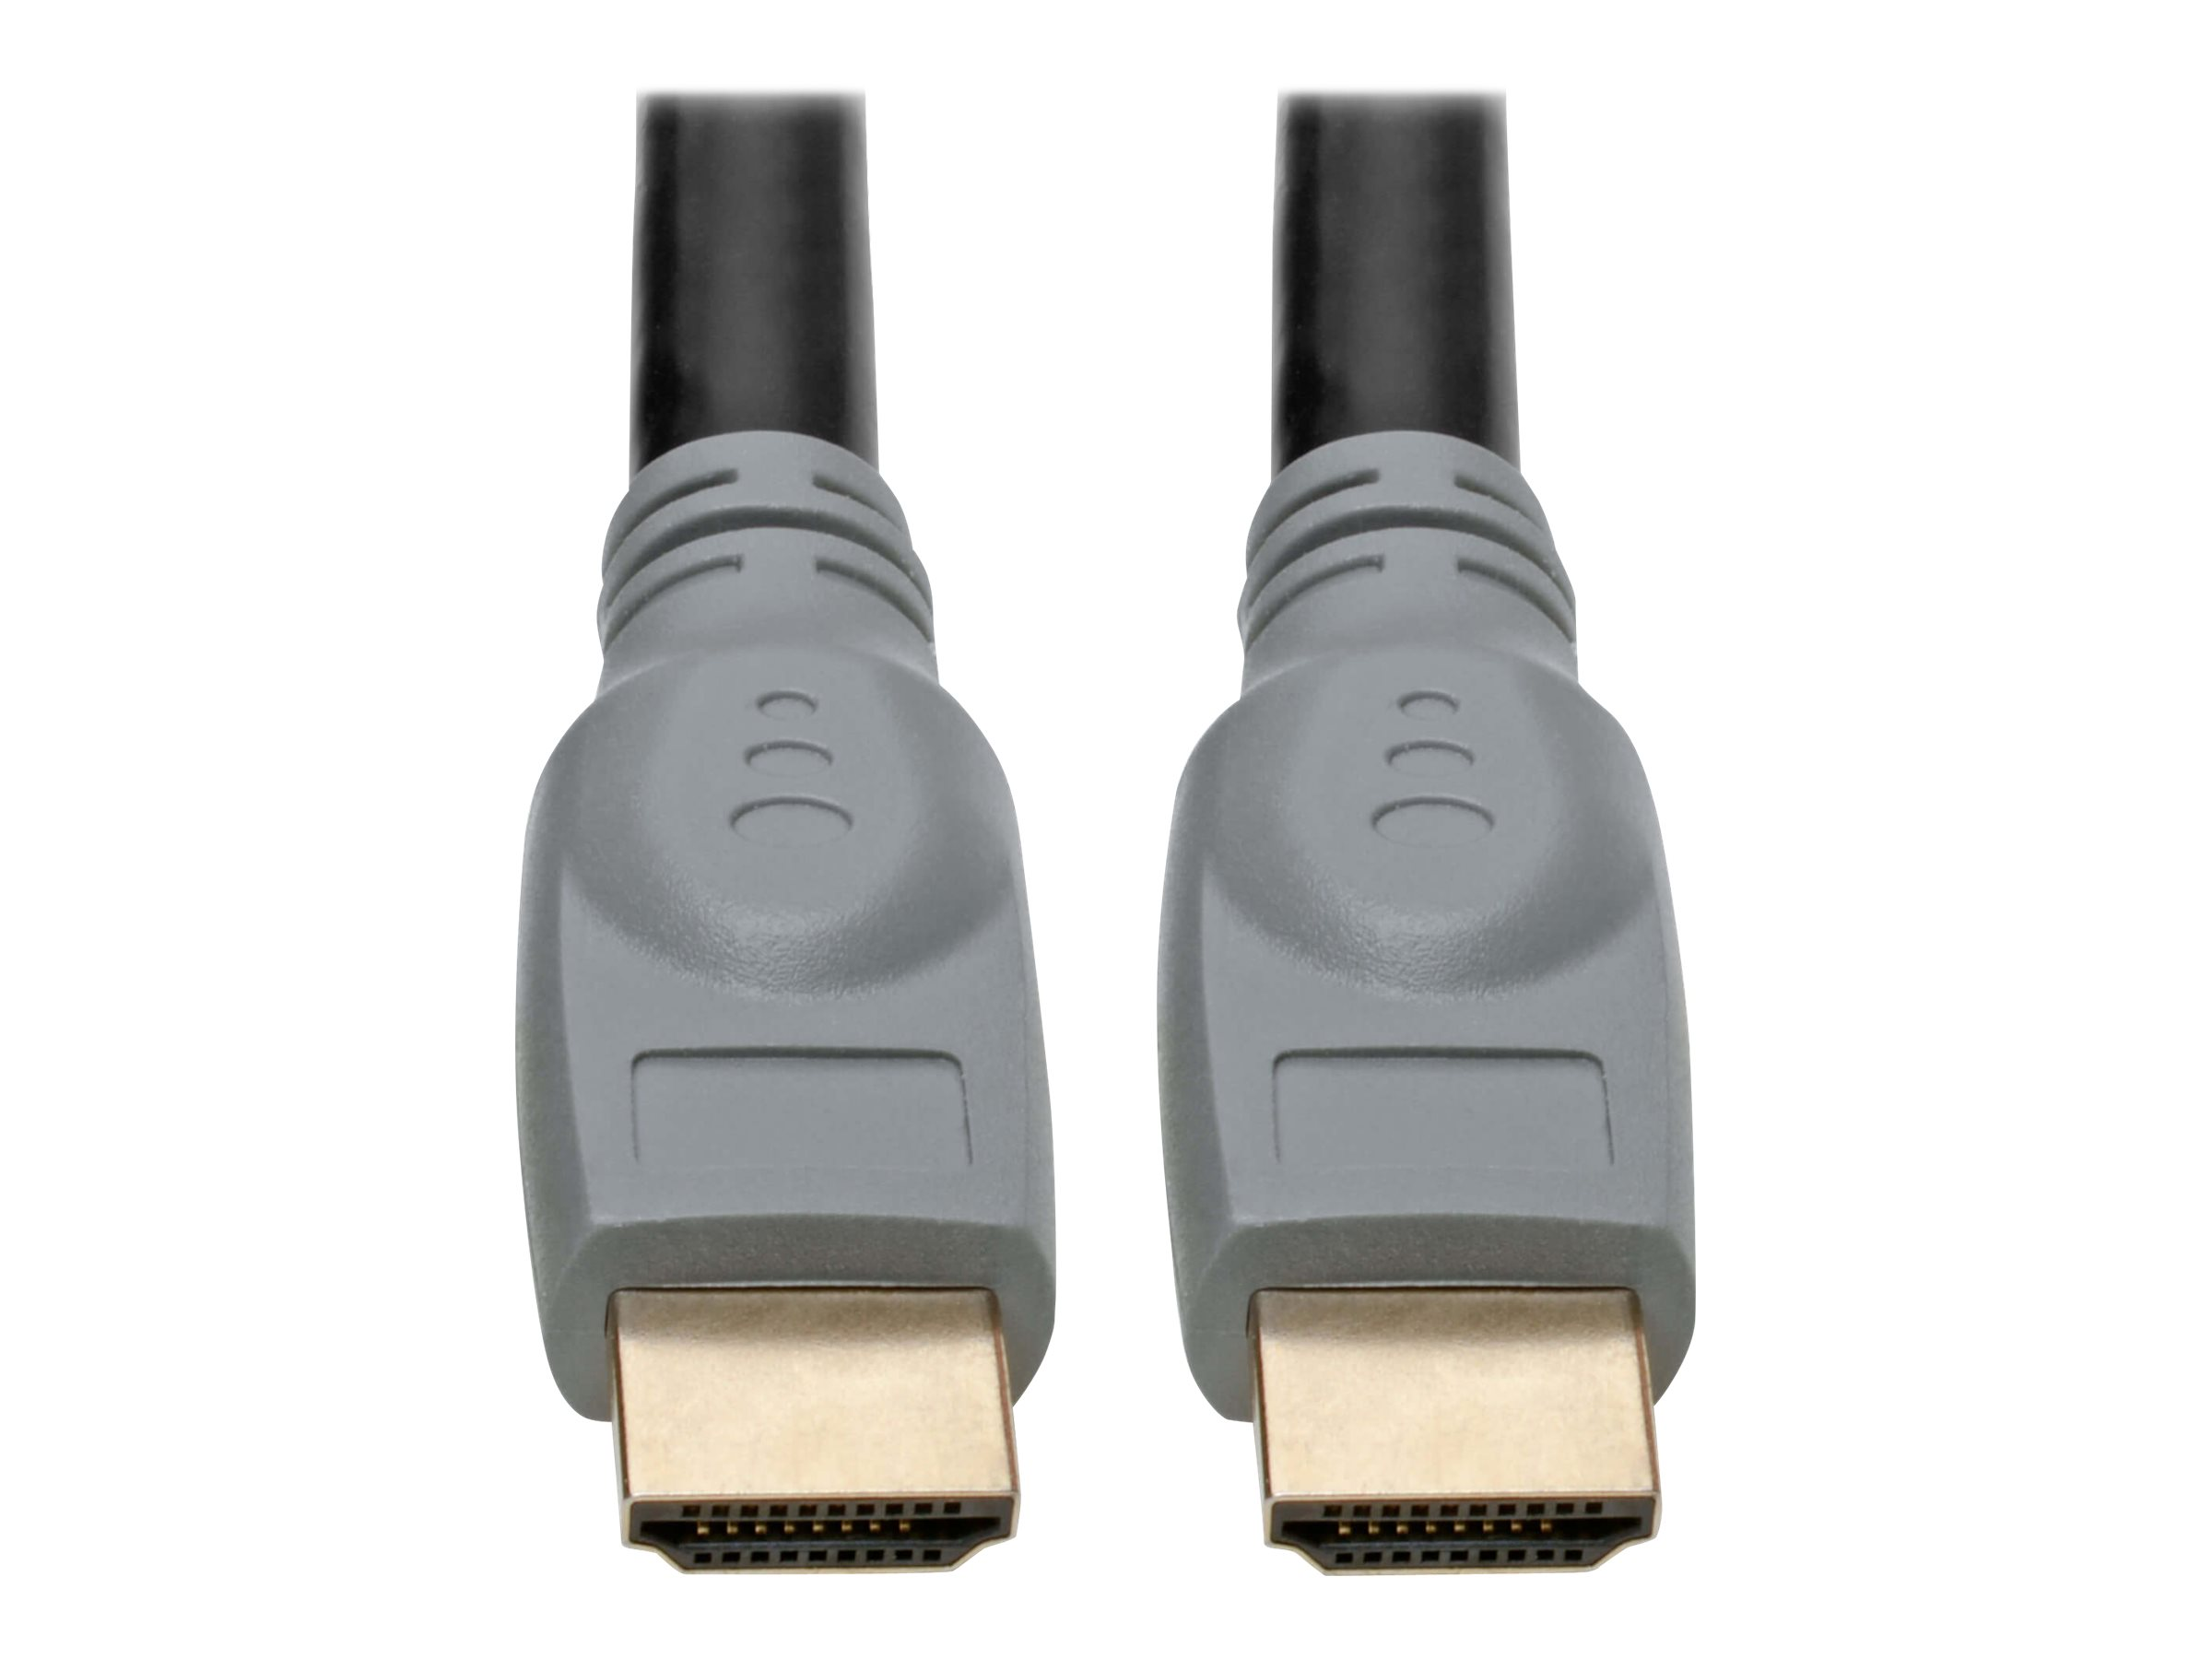 Tripp Lite High-Speed HDMI Cable with Gripping Connectors 4K 60 Hz 4:4:4 M/M Black 25ft - HDMI cable - 7.62 m